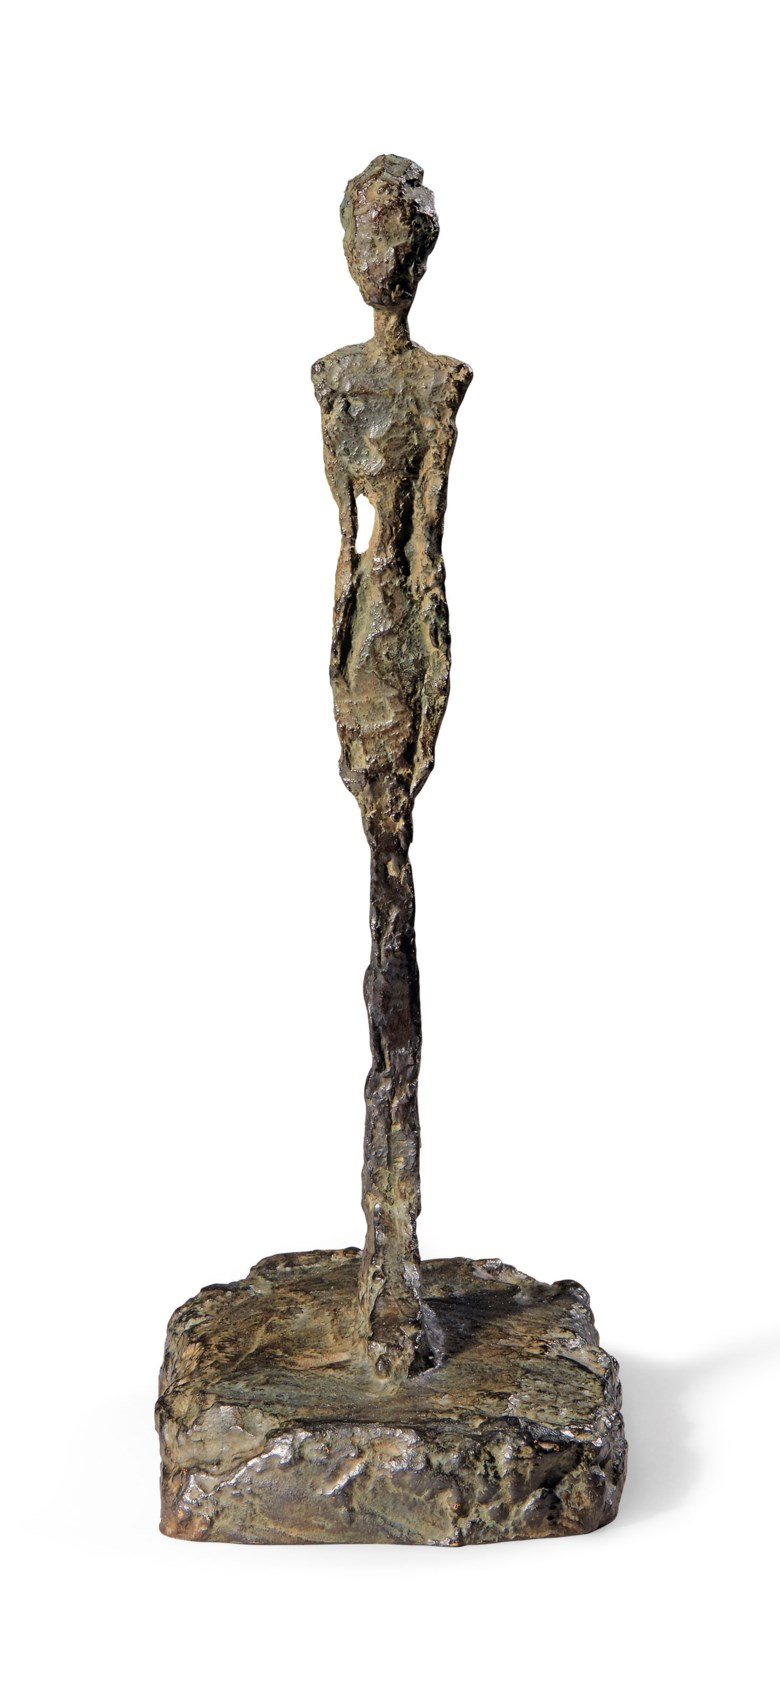 Alberto Giacometti (1901-1966), Figurine de Londres I, 1965 (Guss 1966). 25,9 x 9,1 x 13,6 cm. Estimate CHF 300,000-400,000. Offered in Swiss Art Sale on 18 September 2018 at Christie's in Zurich